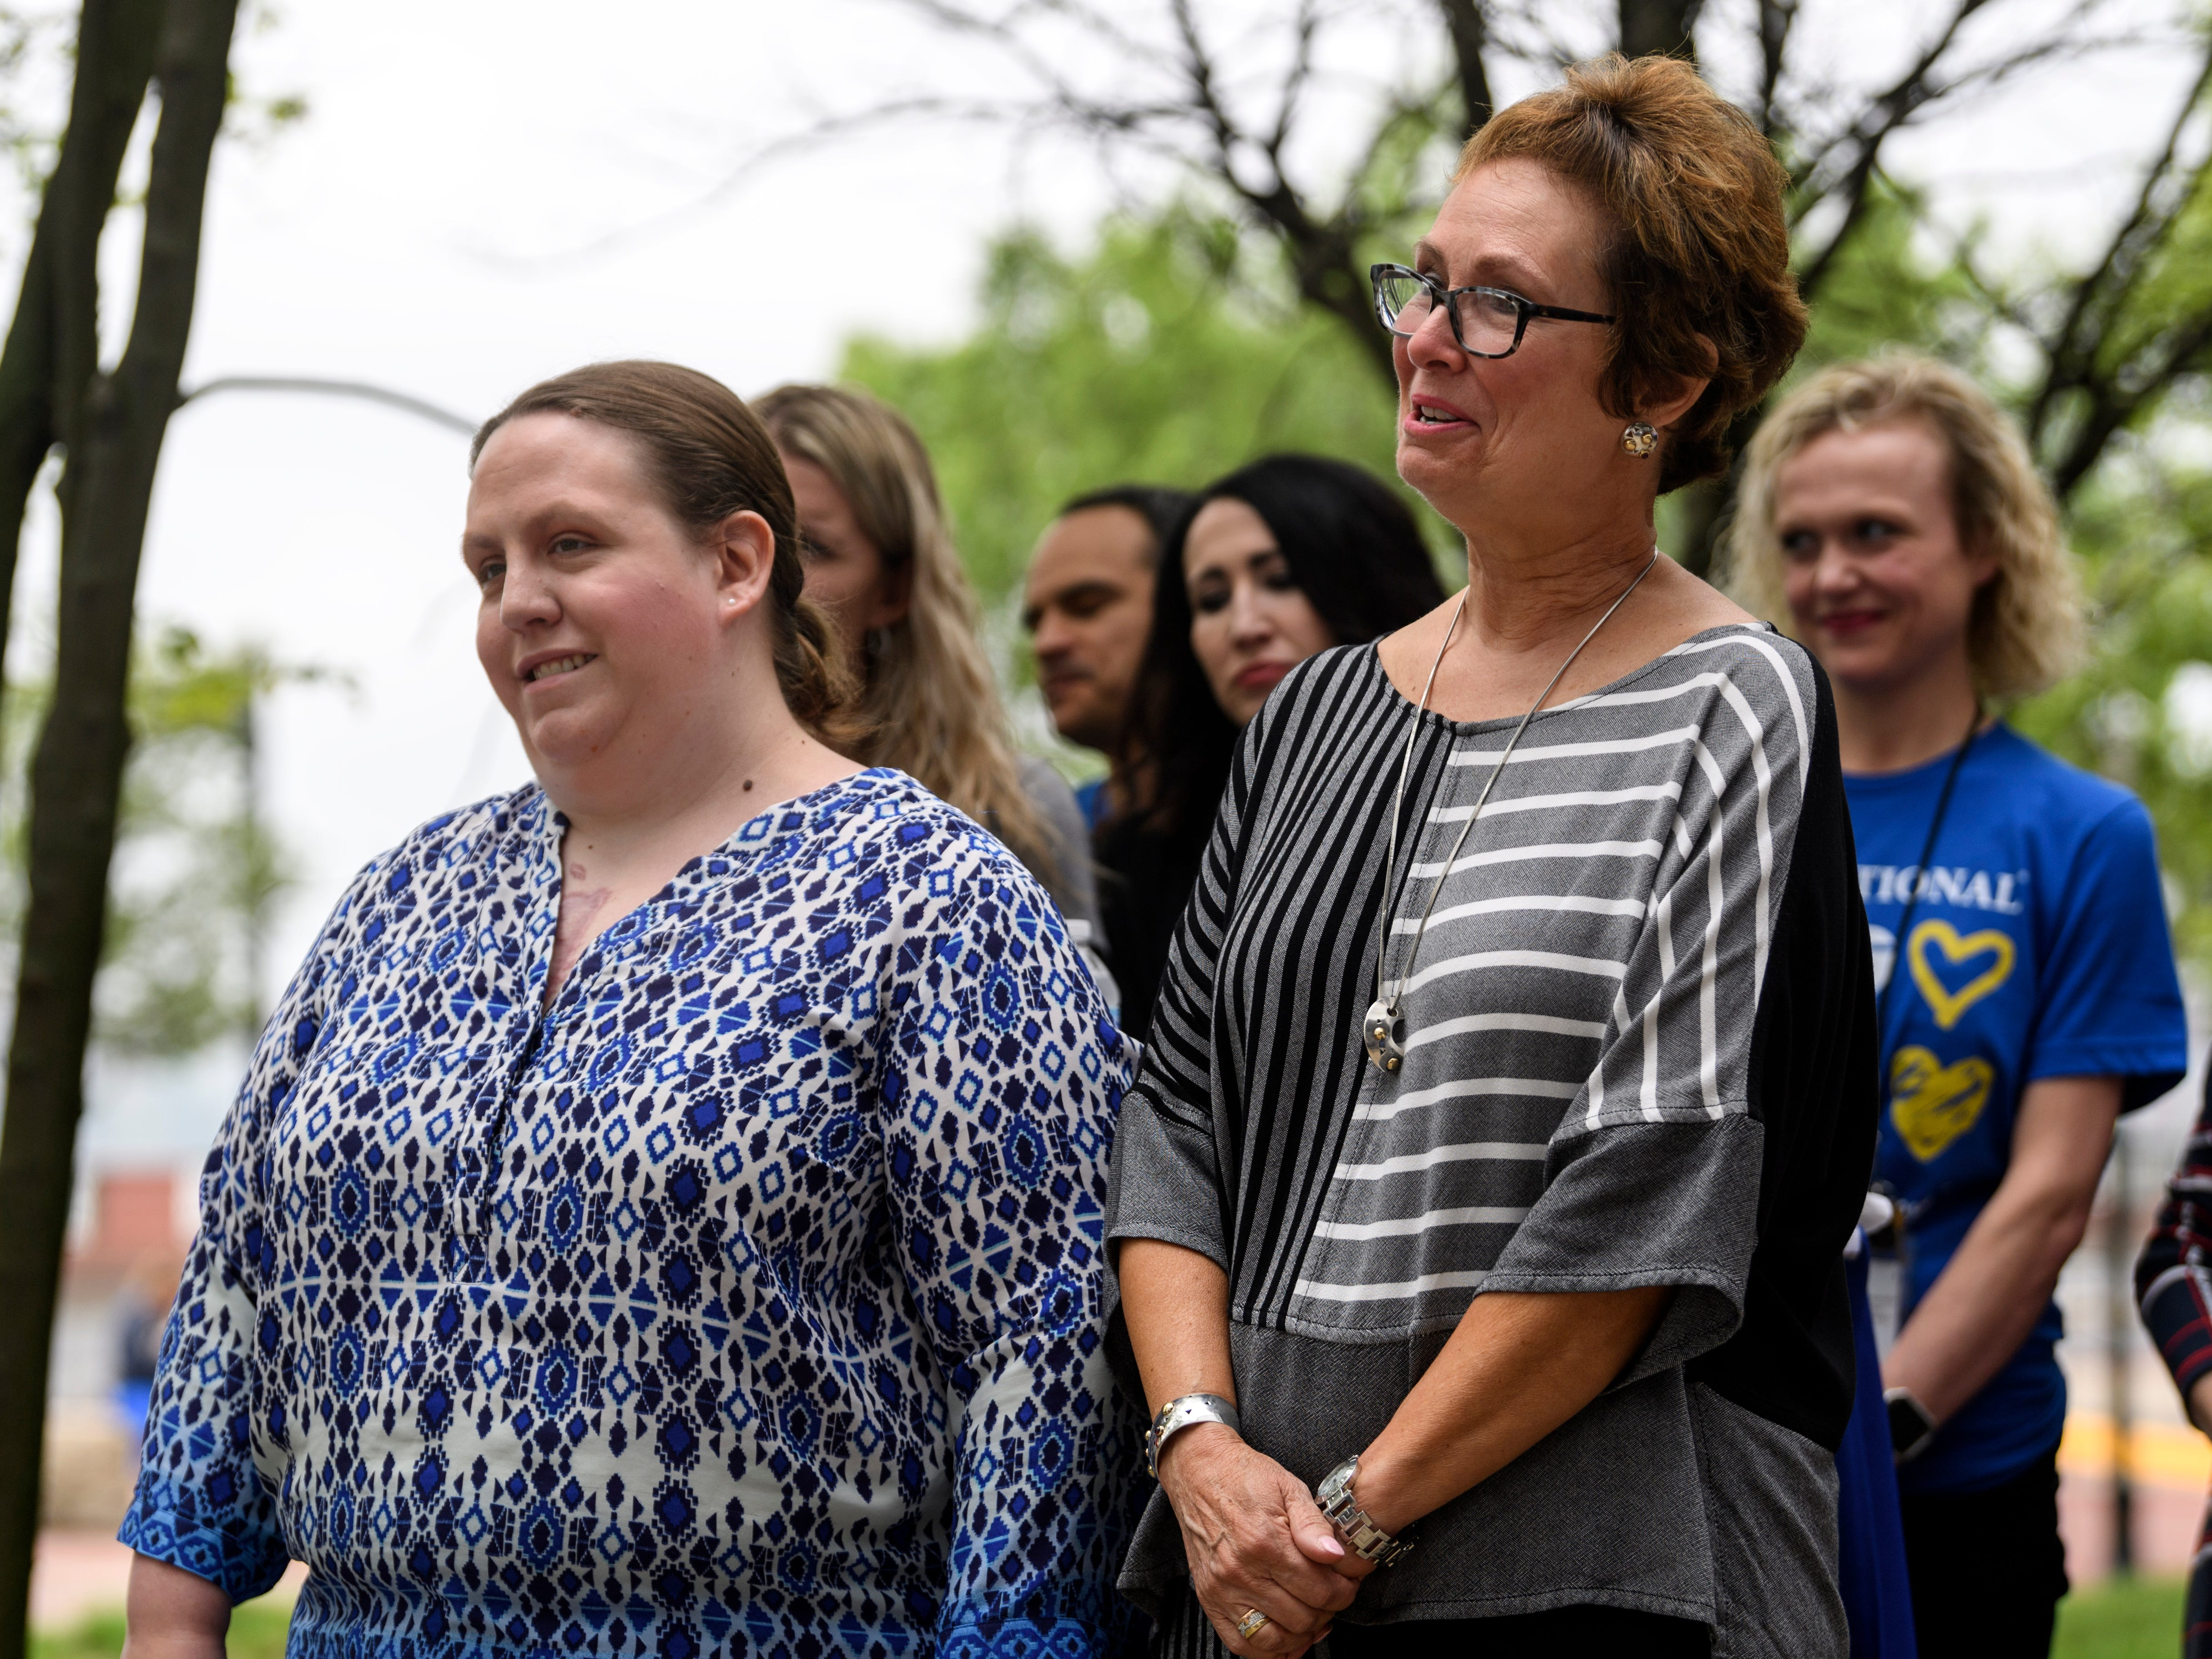 Bob Jones's daughter Carolyn, left, and wife Lisa, right, listen as he thanks the large crowd in attendance at his retirement party held outside of Old National Bank in downtown Evansville, Ind., Friday, May 3, 2019.